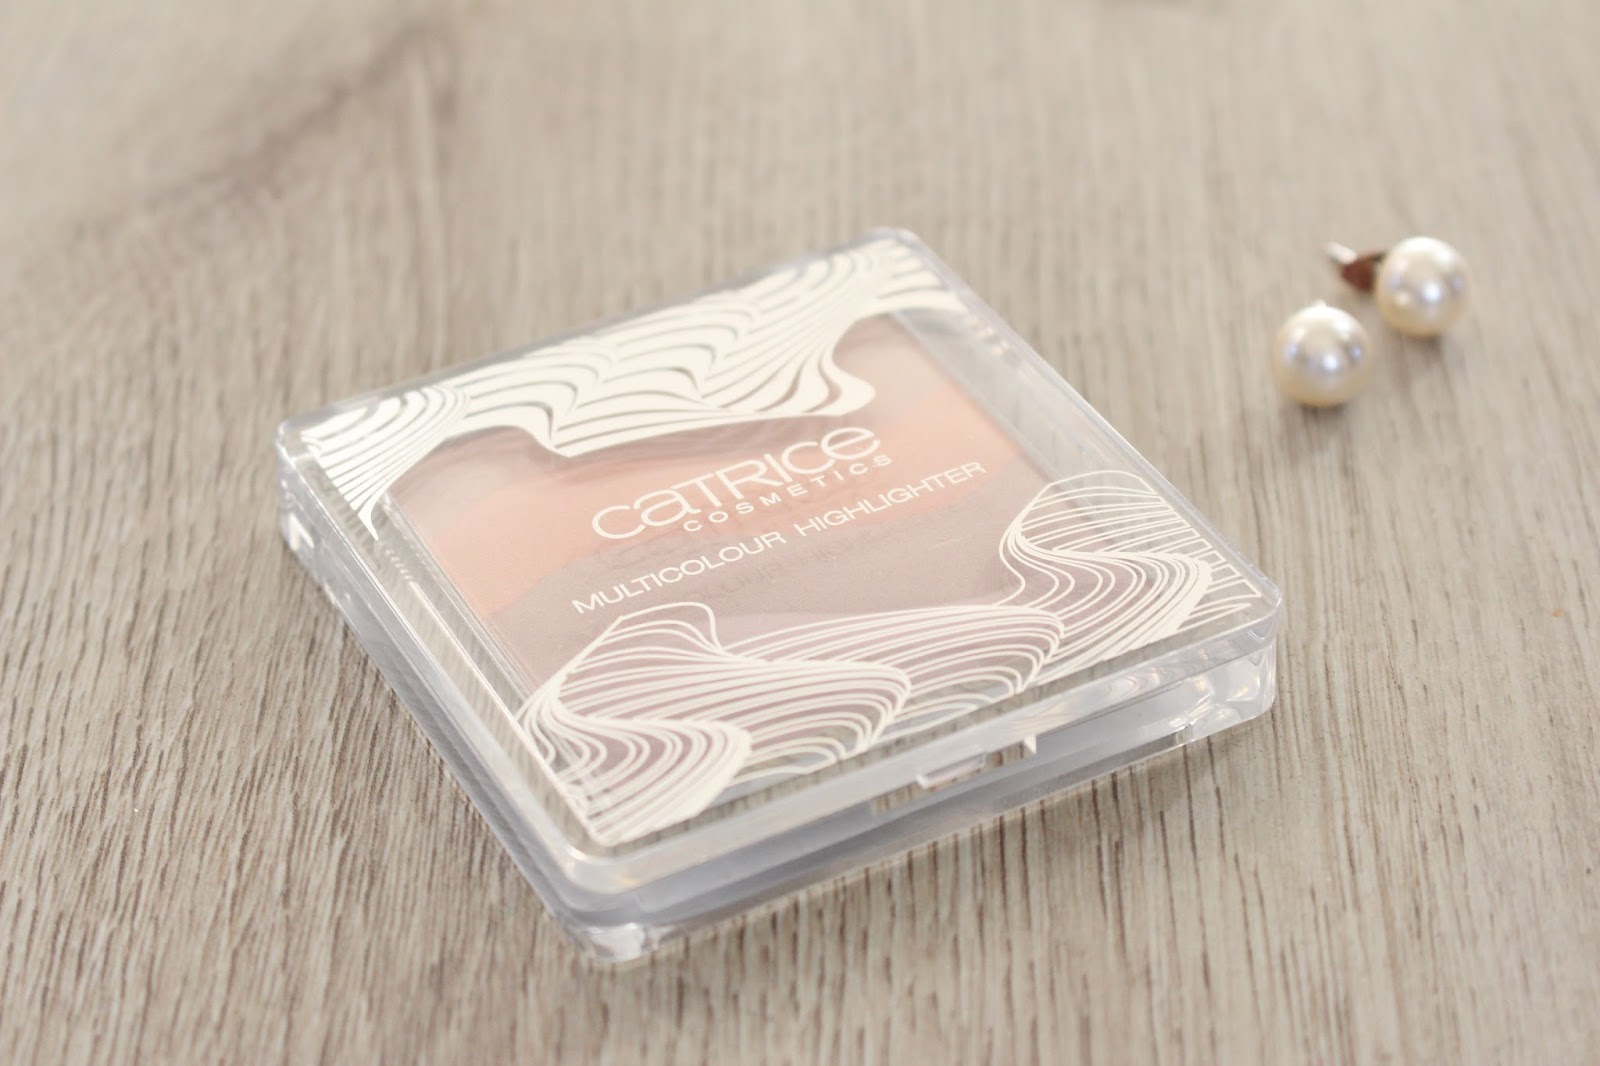 Catrice VISIONairy Multicolour Highlighter